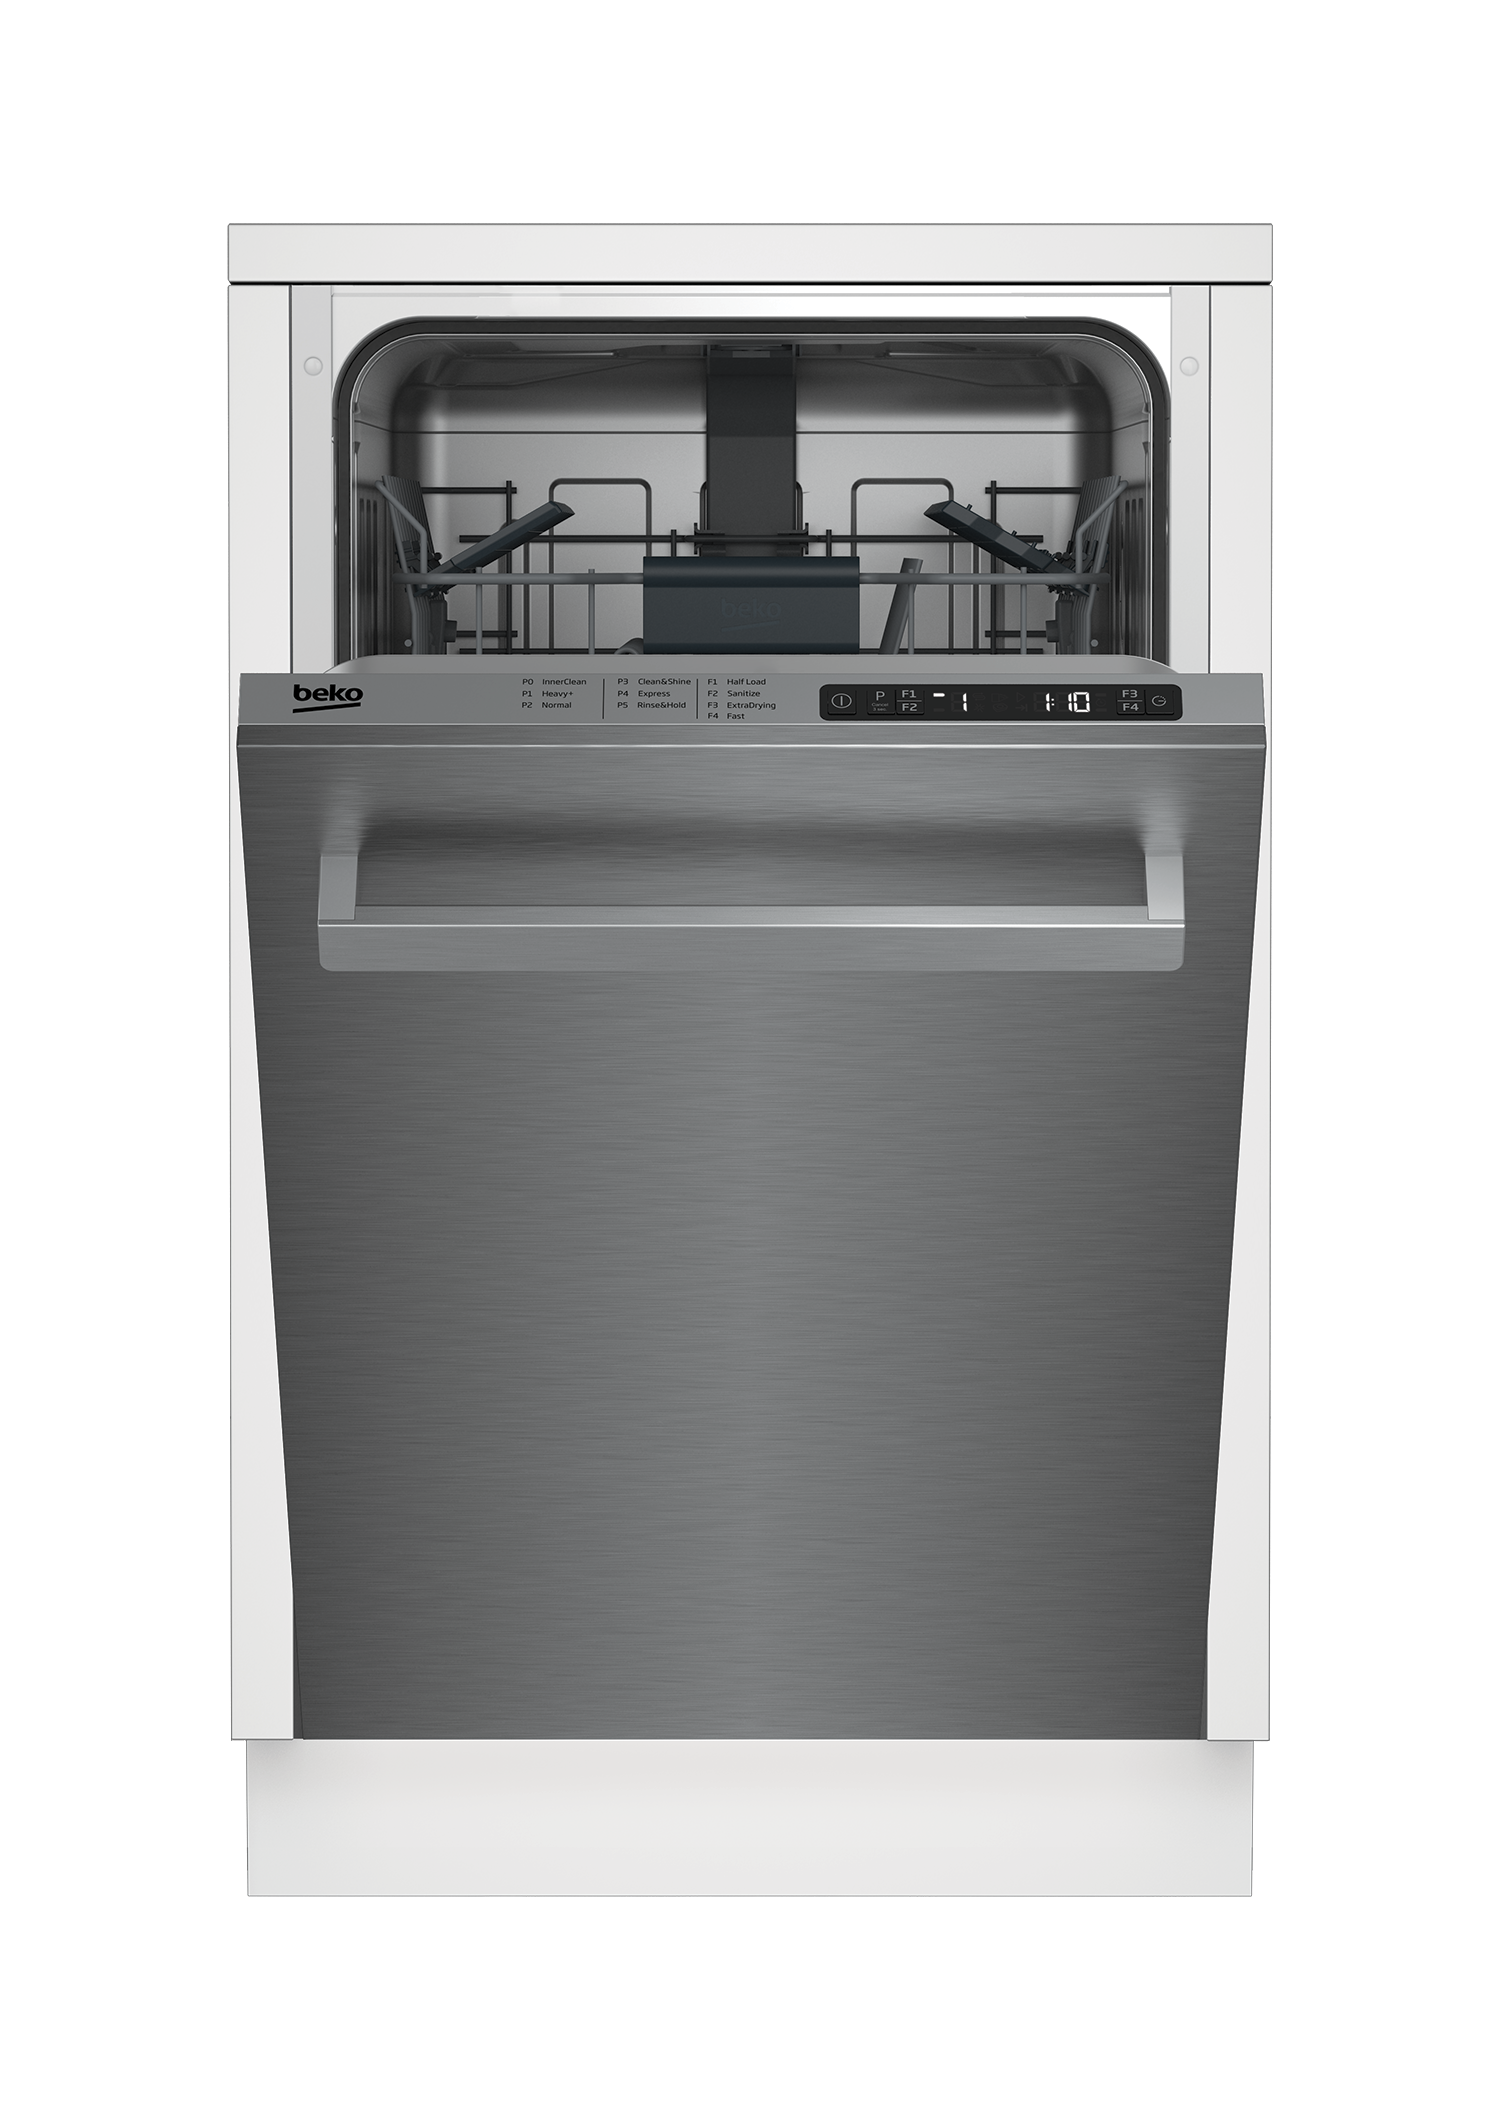 Slim Size Stainless Dishwasher, 8 place settings, 48 dBa, Top Control DDS25842X